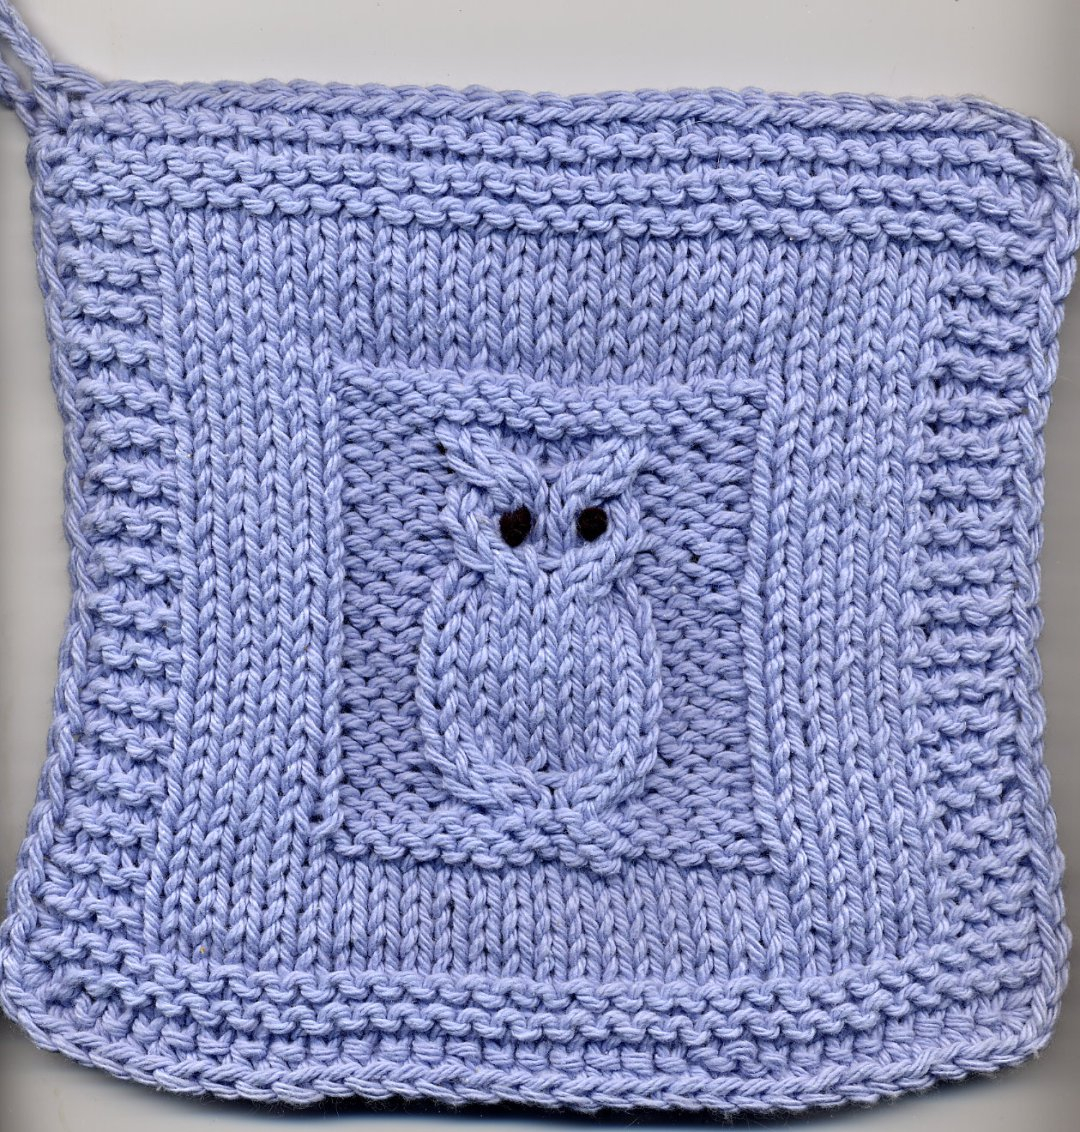 Free Knitted Cotton Dishcloth Patterns Dishcloth And Washcloth Knitting Patterns In The Loop Knitting